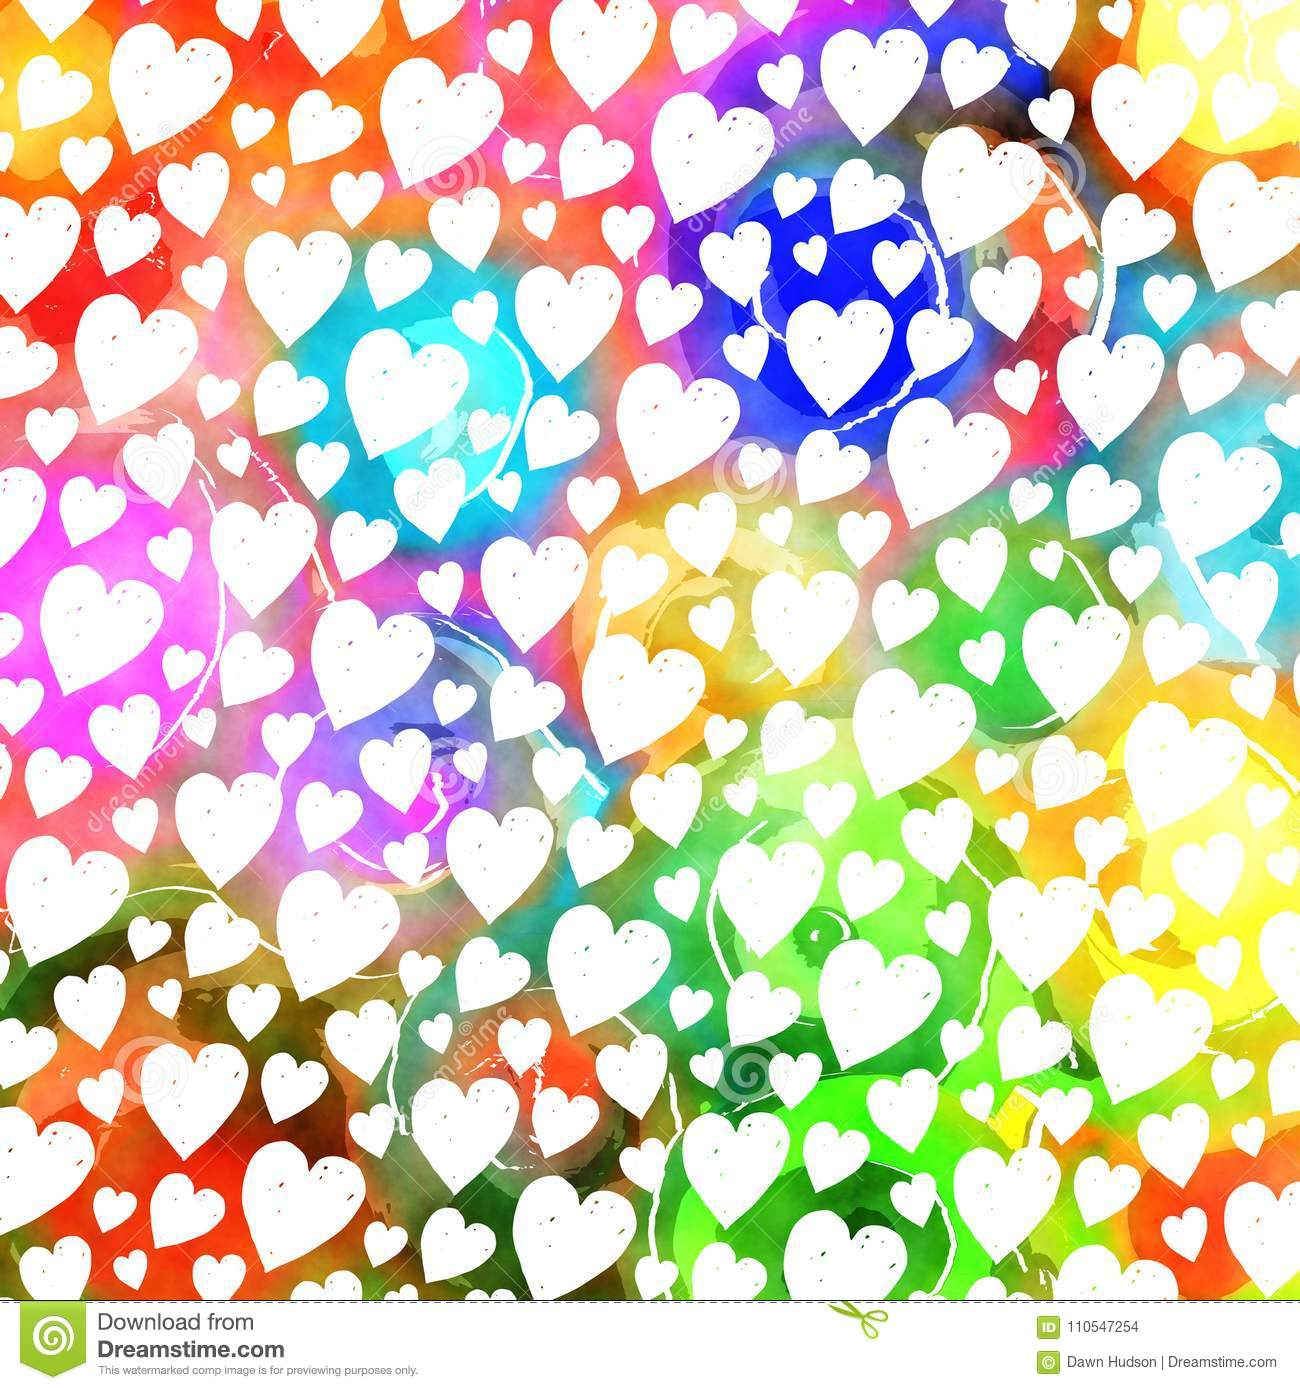 Colorful Watercolor Love Heart Pattern